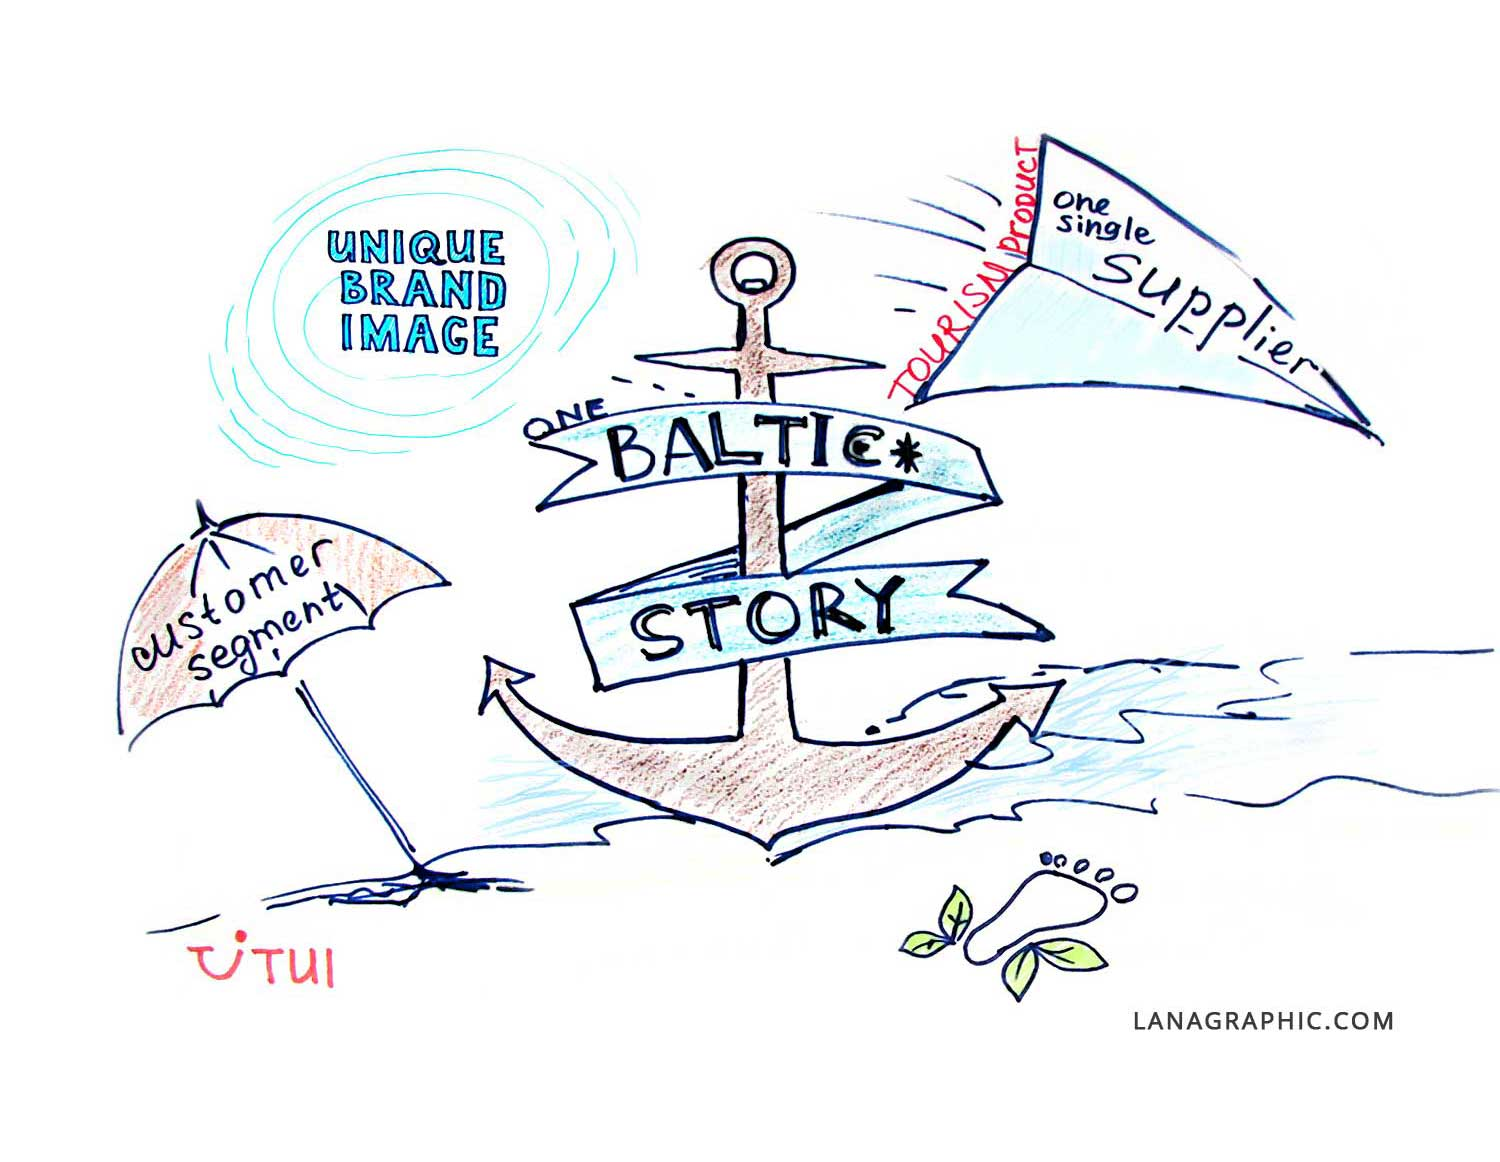 tourism-forum-baltic-story-by-Lanagraphic